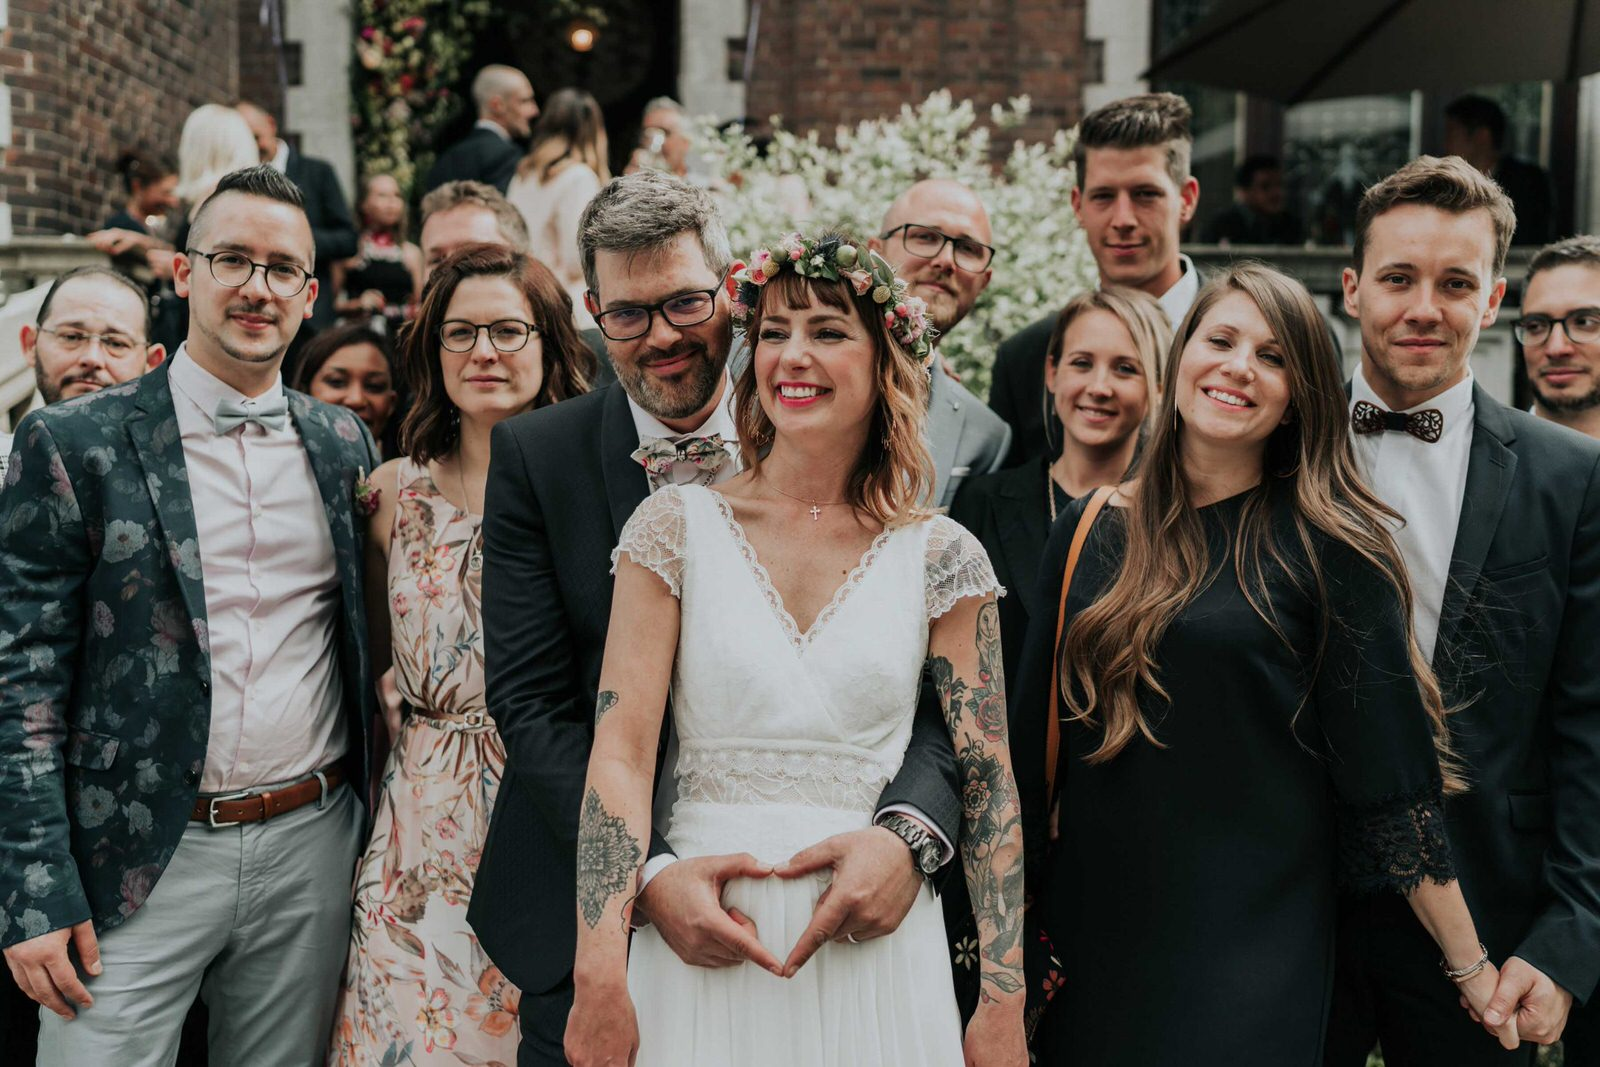 FOREVER-MARIAGE-PHOTOGRAPHE-BELGIQUE-514-scaled-2